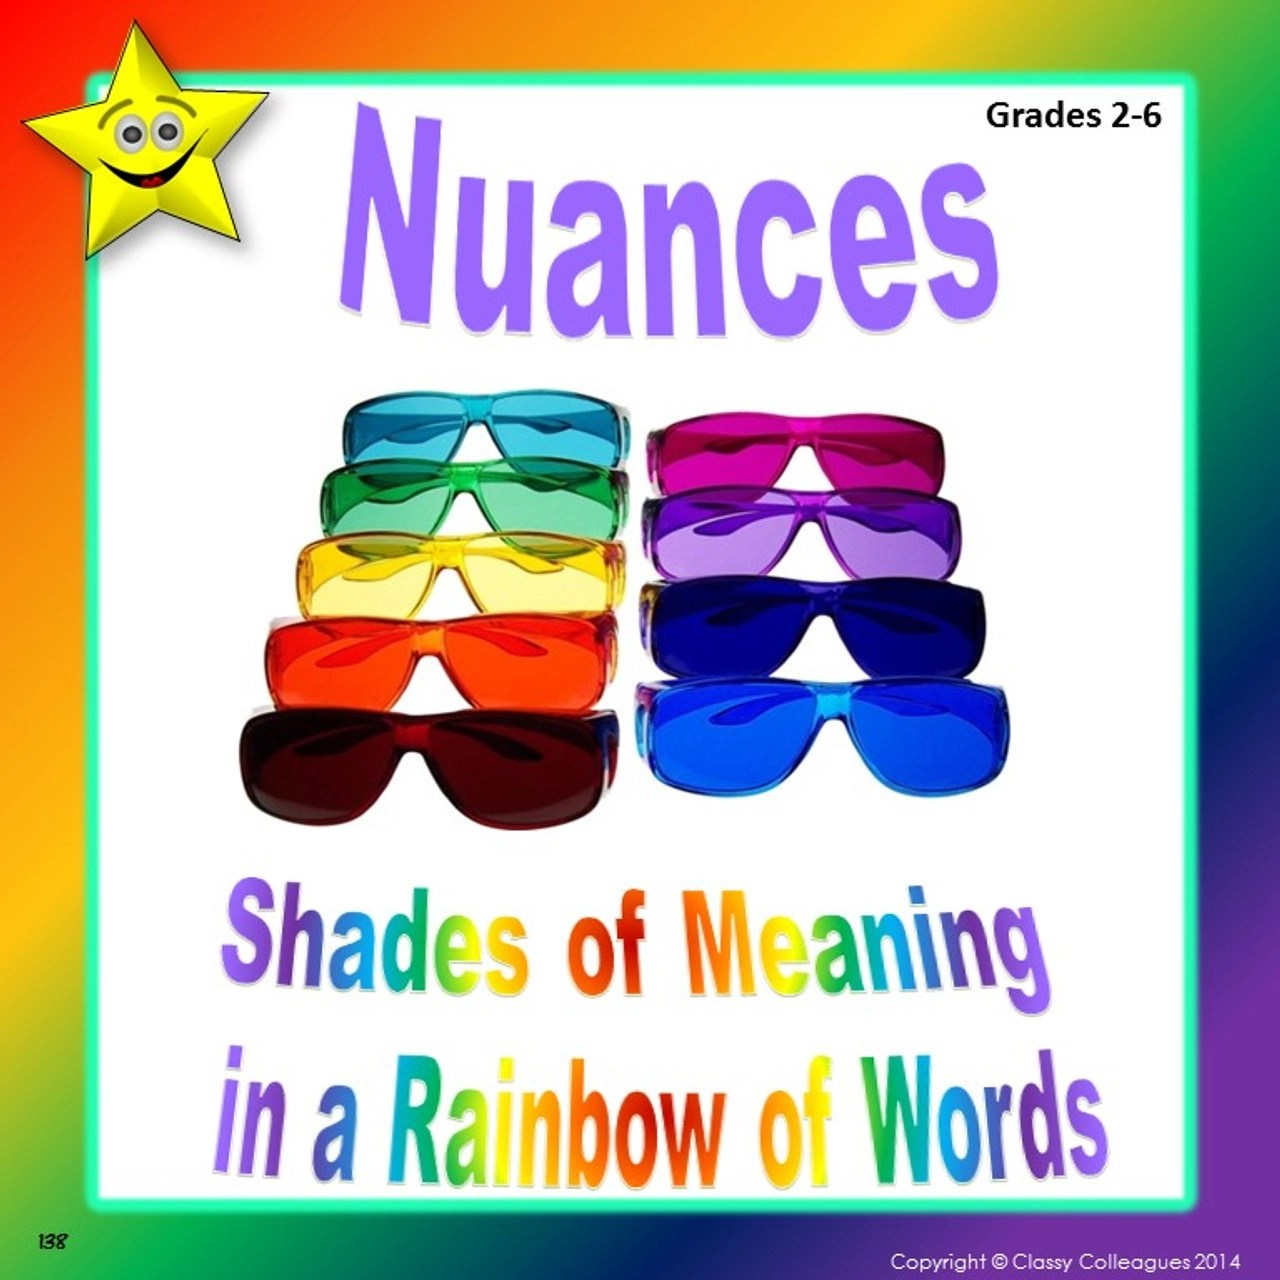 small resolution of Nuances - Shades of Meaning in a Rainbow of Words - Amped Up Learning